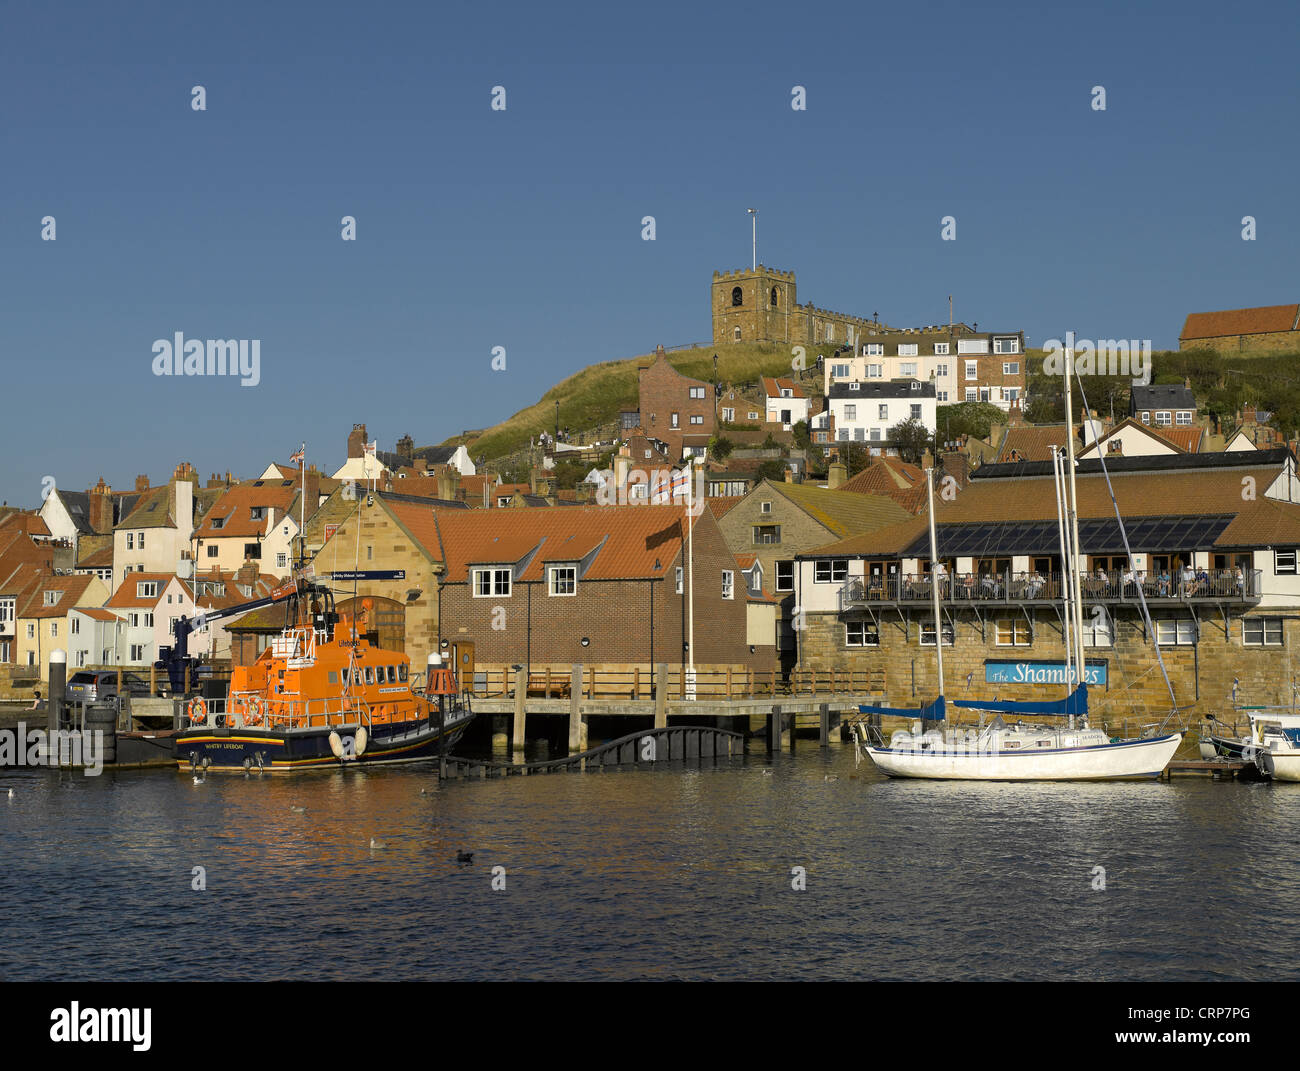 RNLI lifeboat George and Mary Webb moored below St Marys Church at Whitby Lifeboat Station. - Stock Image